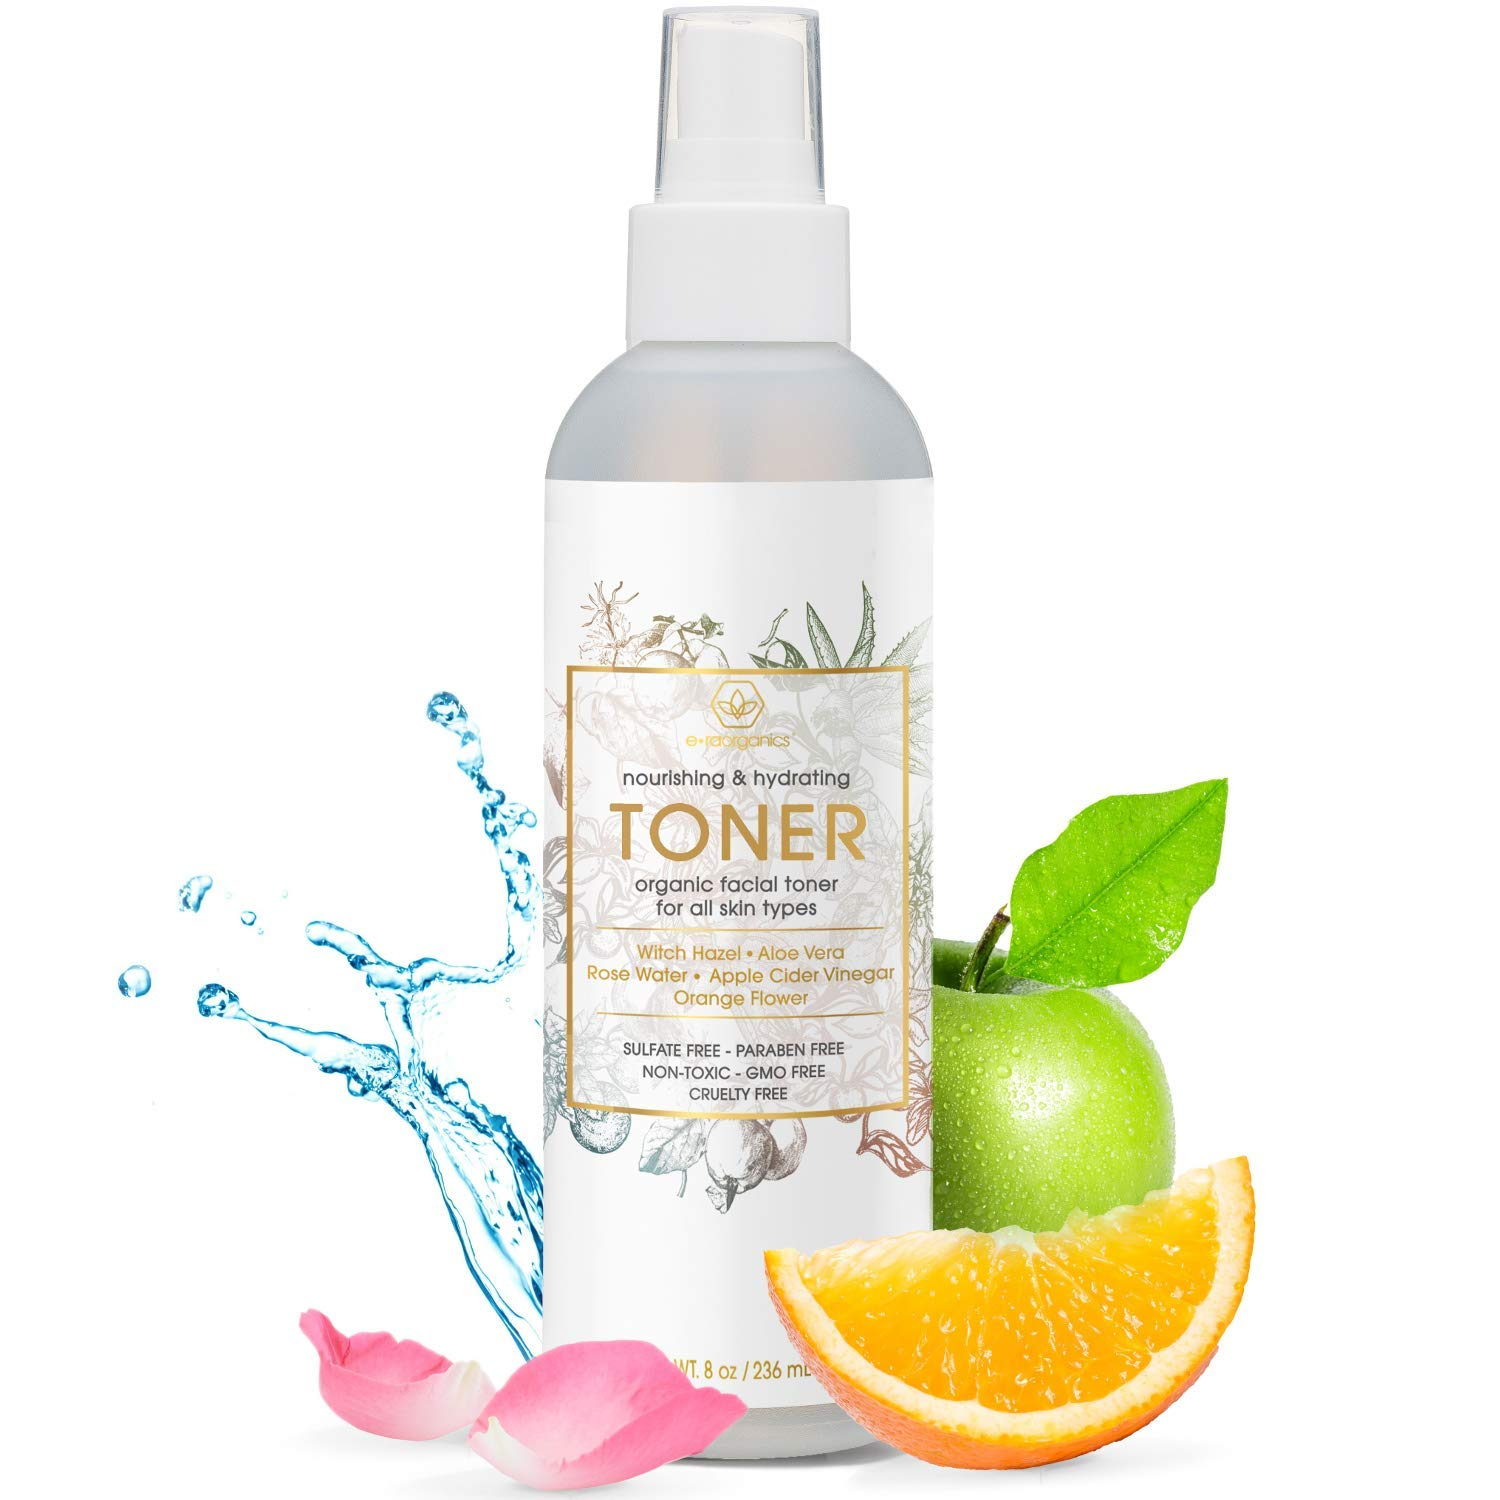 Era Organics Natural & Organic Face Toner Spray